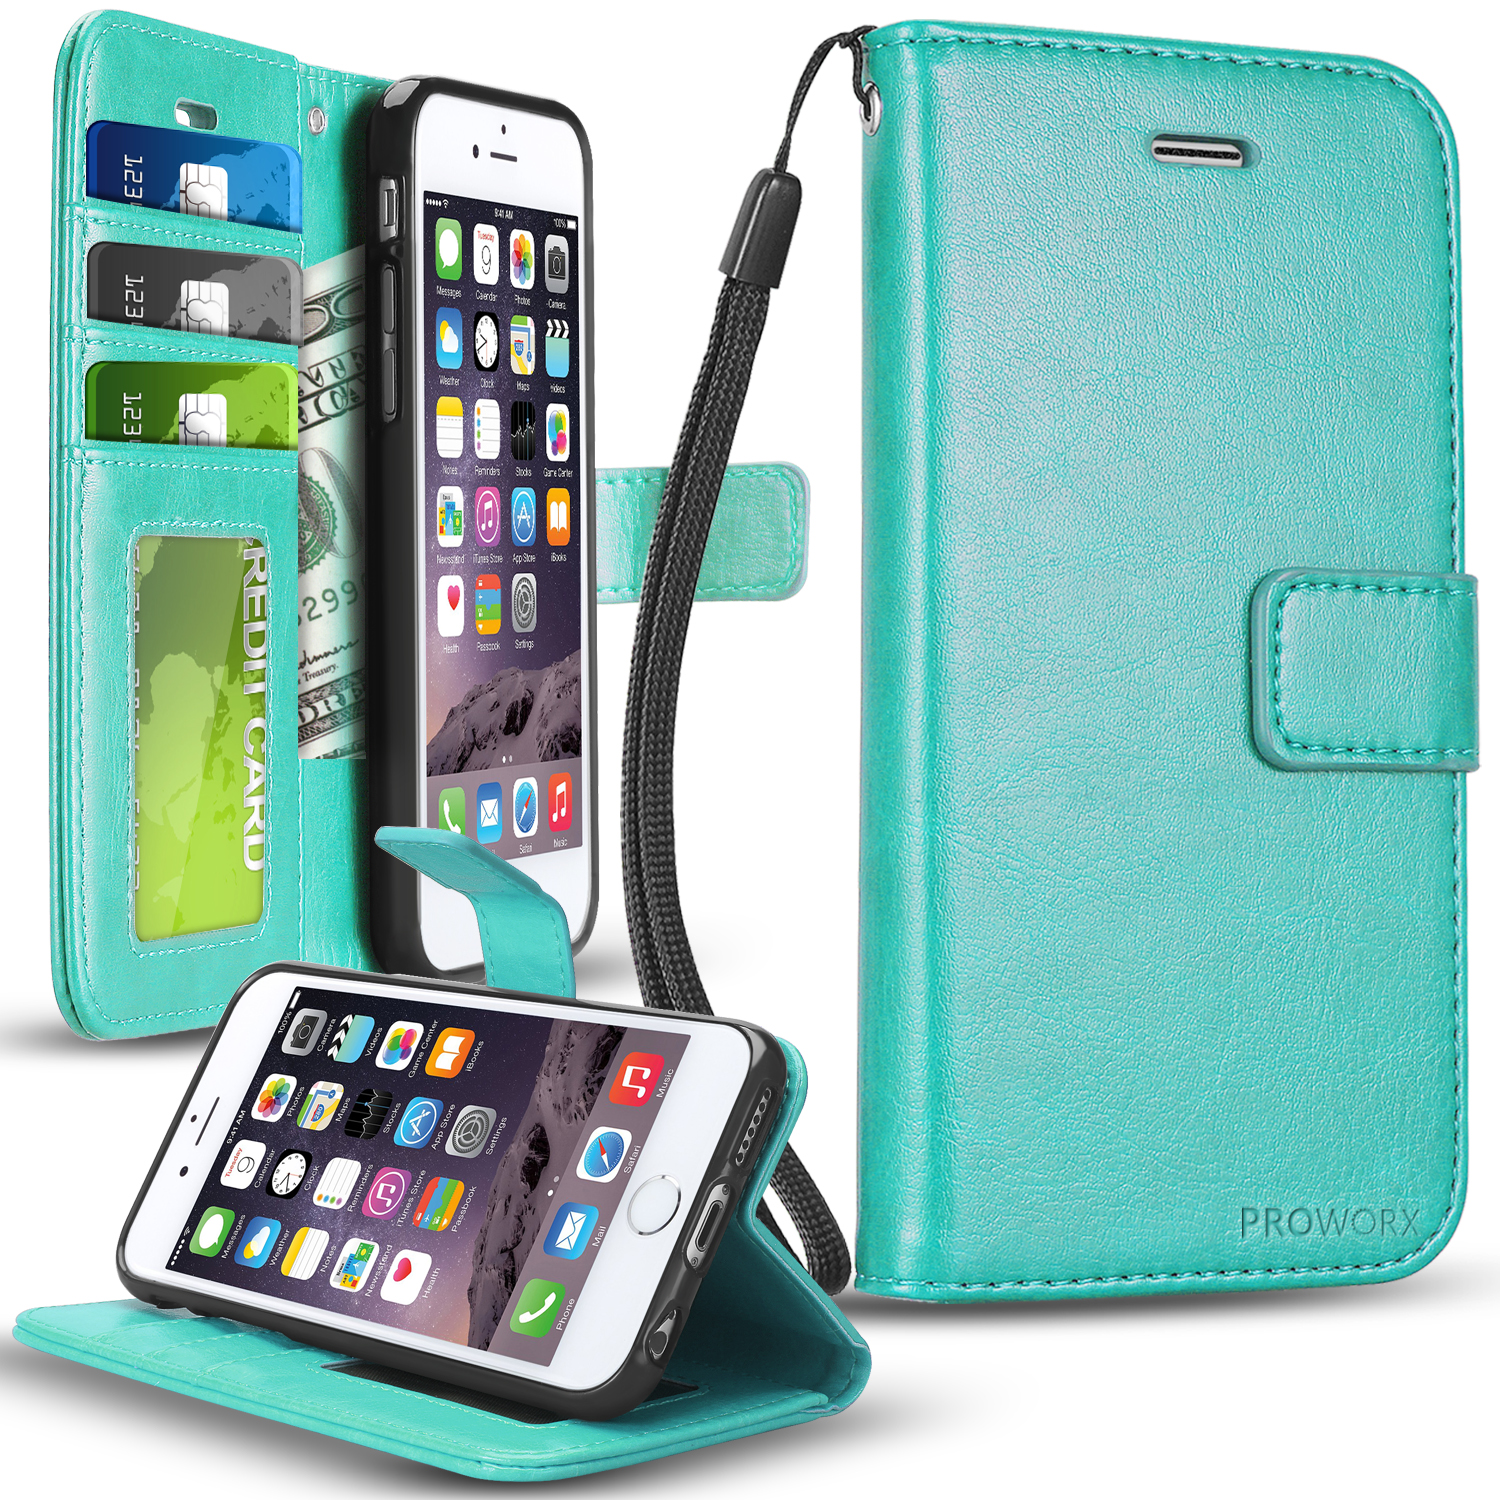 Apple iPhone 6 6S (4.7) Mint Green ProWorx Wallet Case Luxury PU Leather Case Cover With Card Slots & Stand